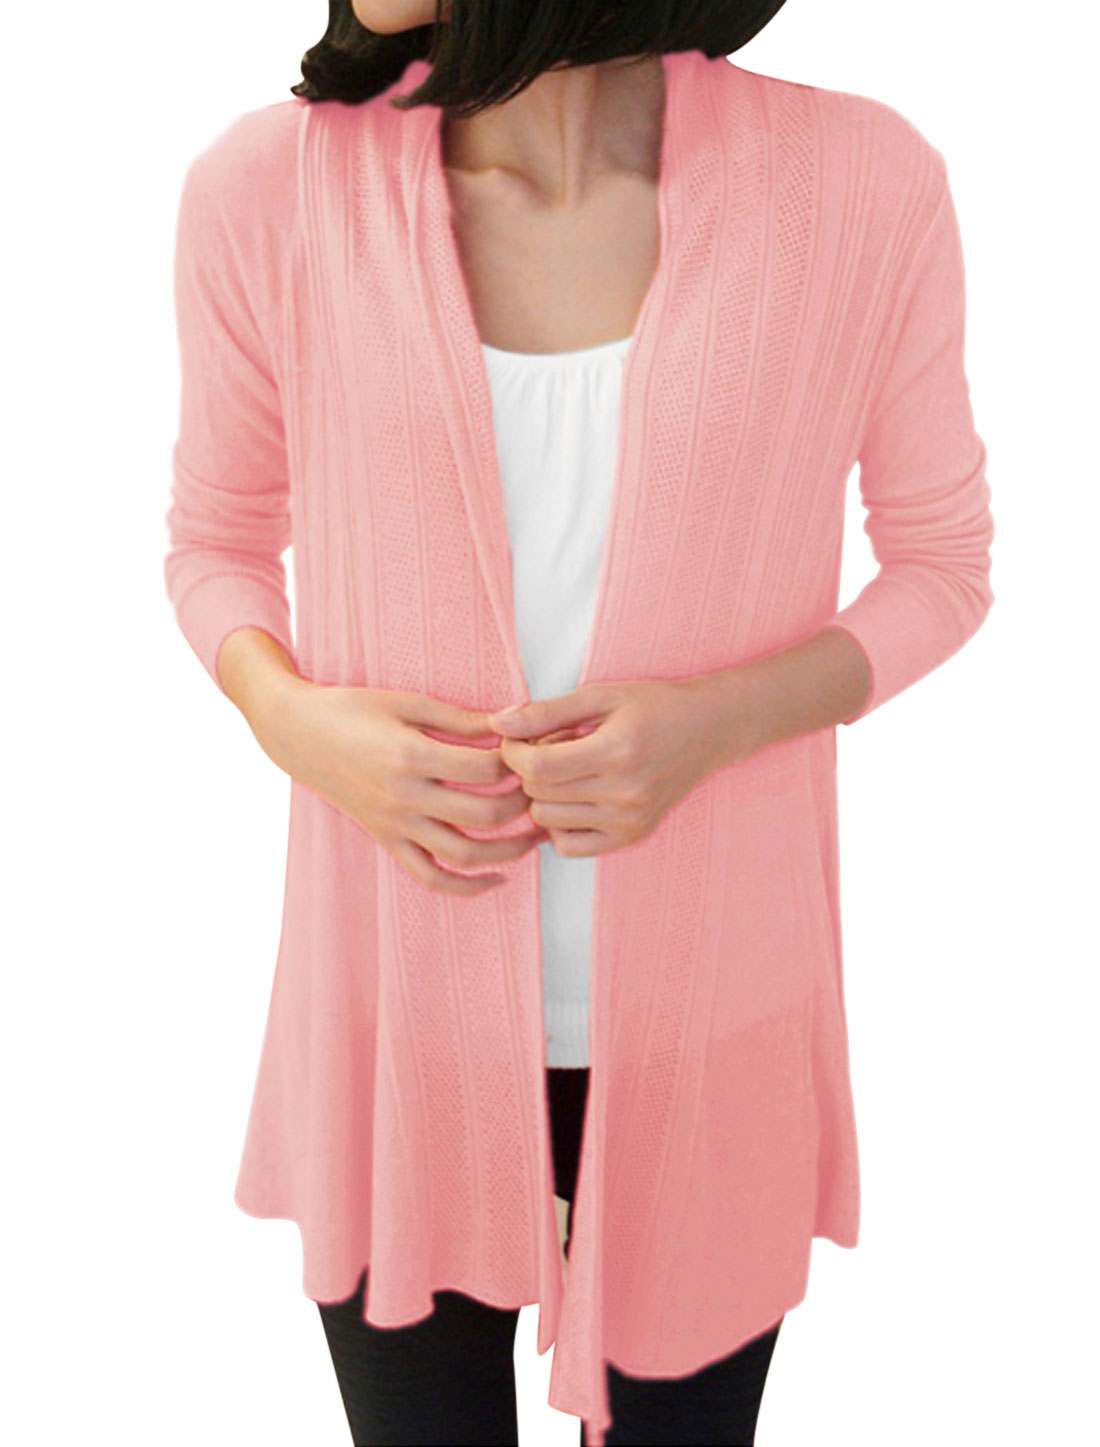 Women Front Opening Long Sleeve Casual Long Cardigan Pink XS